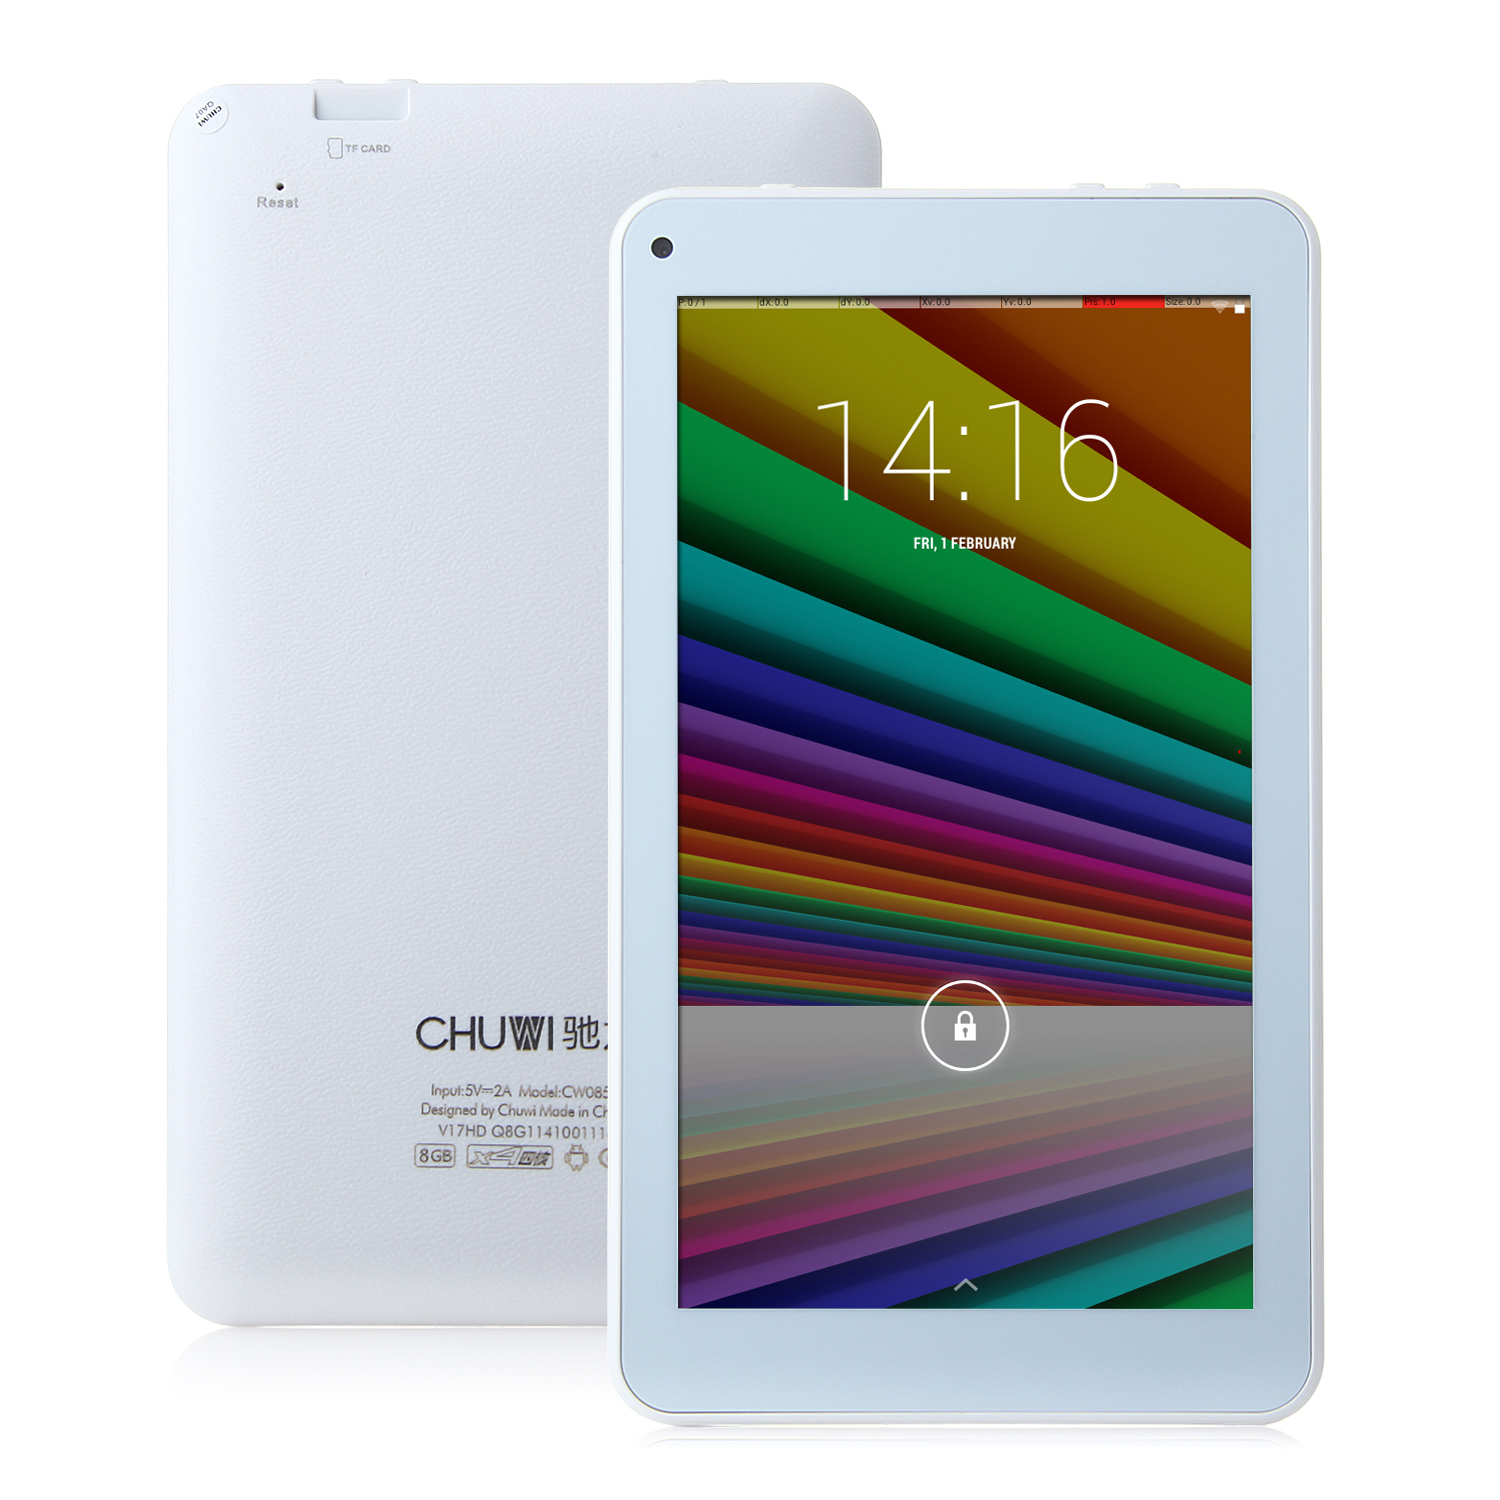 CHUWI V17HD Tablet PC Quad Core RK3188 7.0 Inch Android 4.4 IPS Screen 8GB White